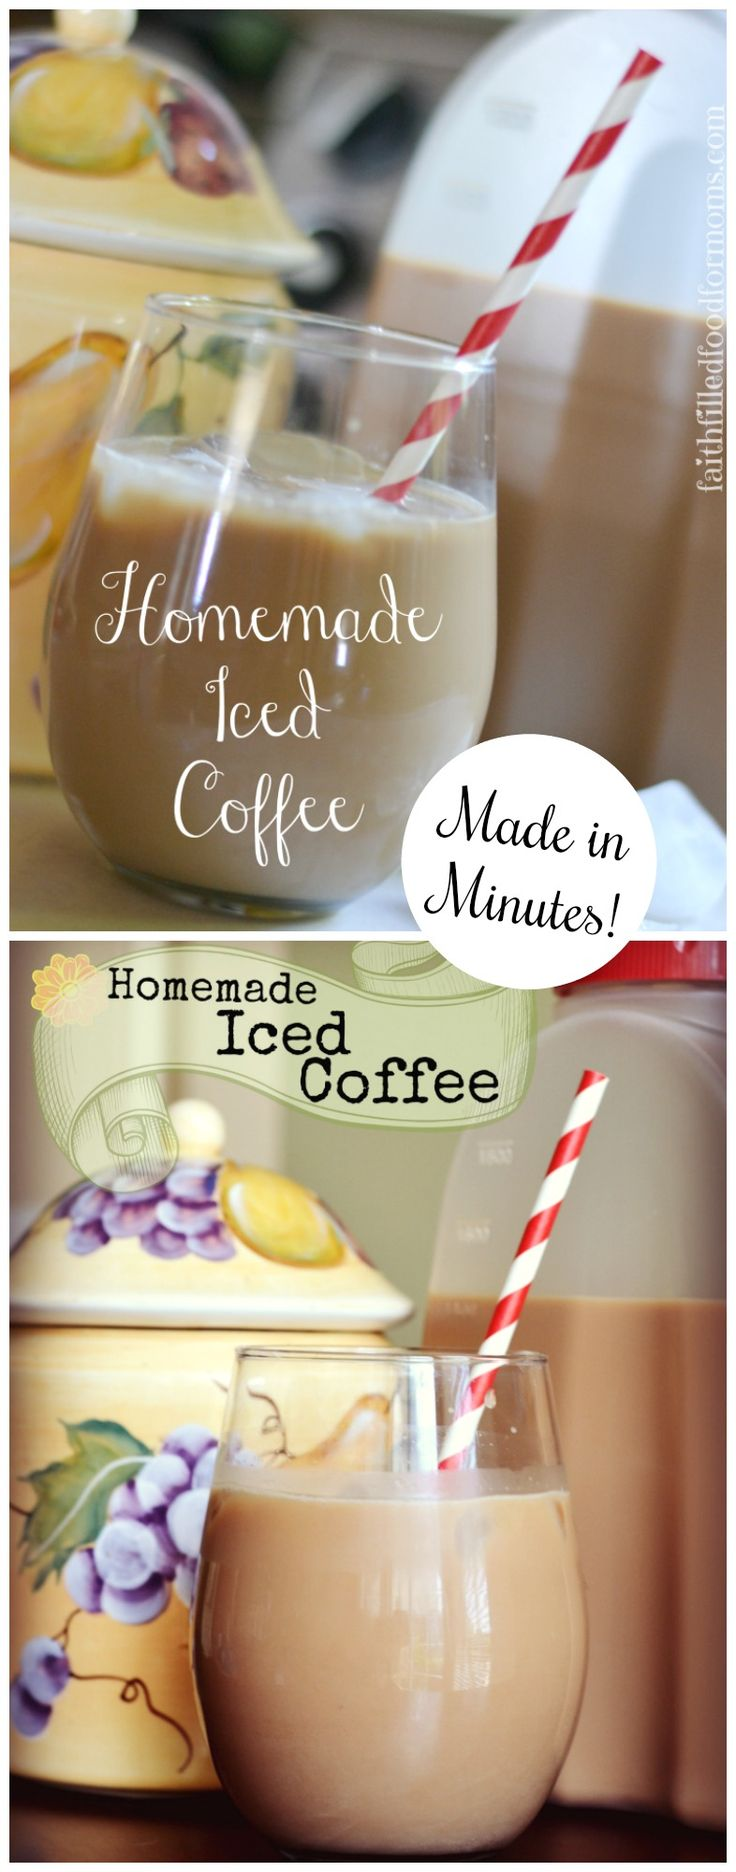 Learn how to Make this easy homemade Iced Coffee Drink recipe at  home and save yourself TONS of money! Better than going to the coffee stand and with only a few ingredients. YUM! #diy #coffee #recipe #coffeetime #coffeeaddict